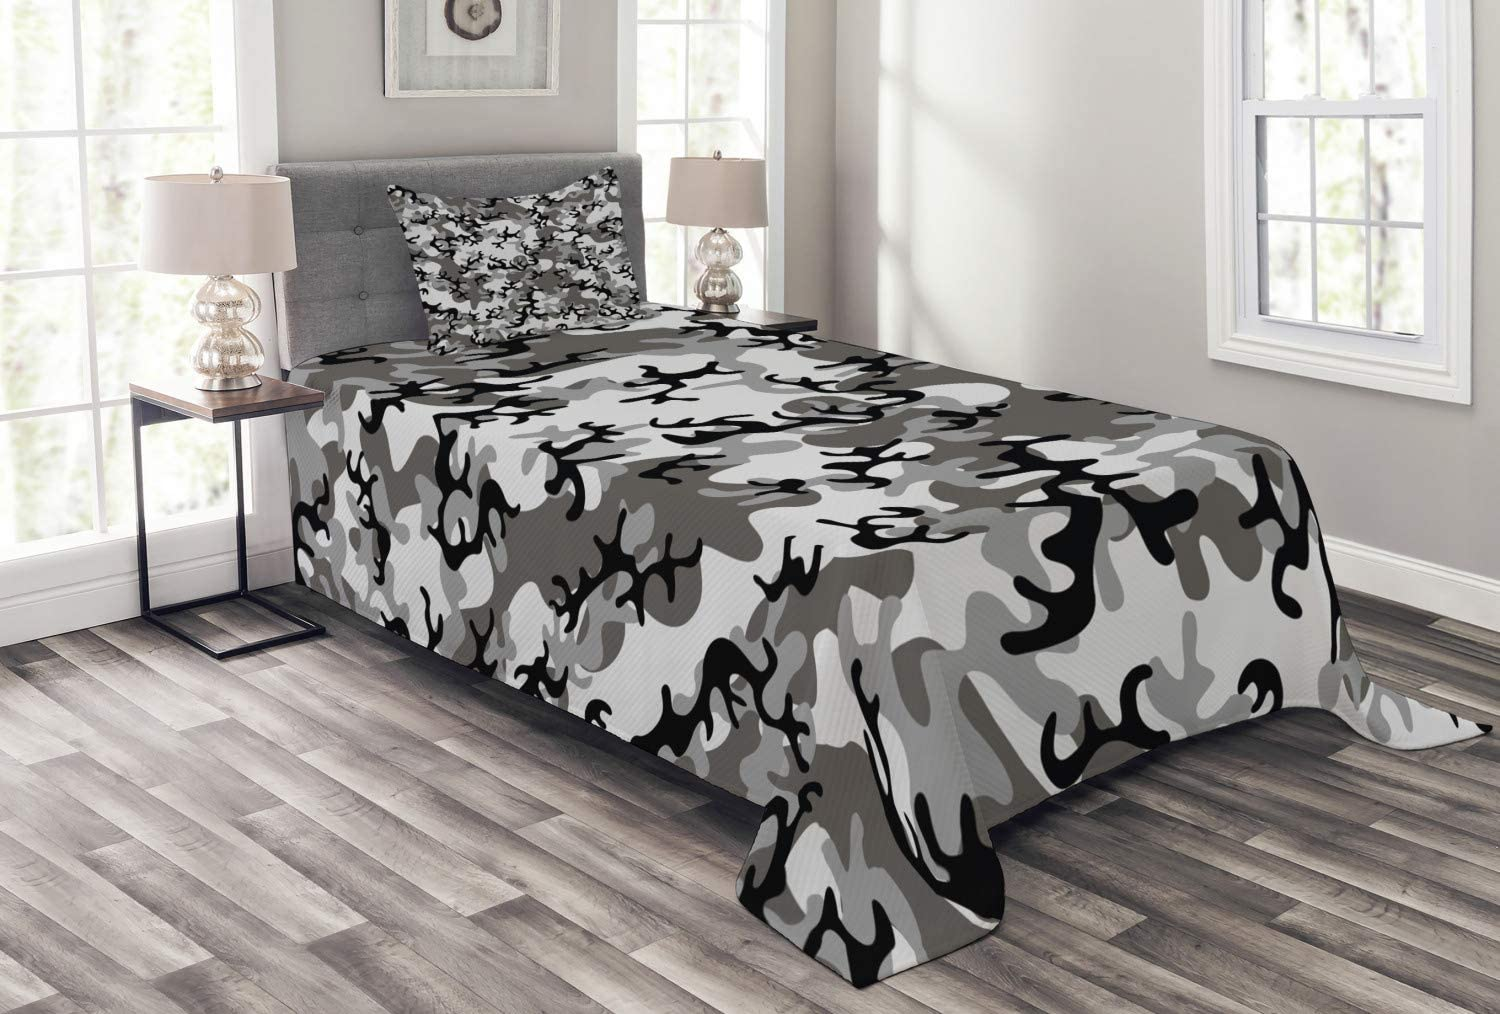 Ambesonne Camo Bedspread Camouflage Concept Concealment Artifice Hiding Force Uniform Pattern Fashion Decorative Quilted 2 Piece Coverlet Set With Pillow Sham Twin Size Grey Black Home Kitchen